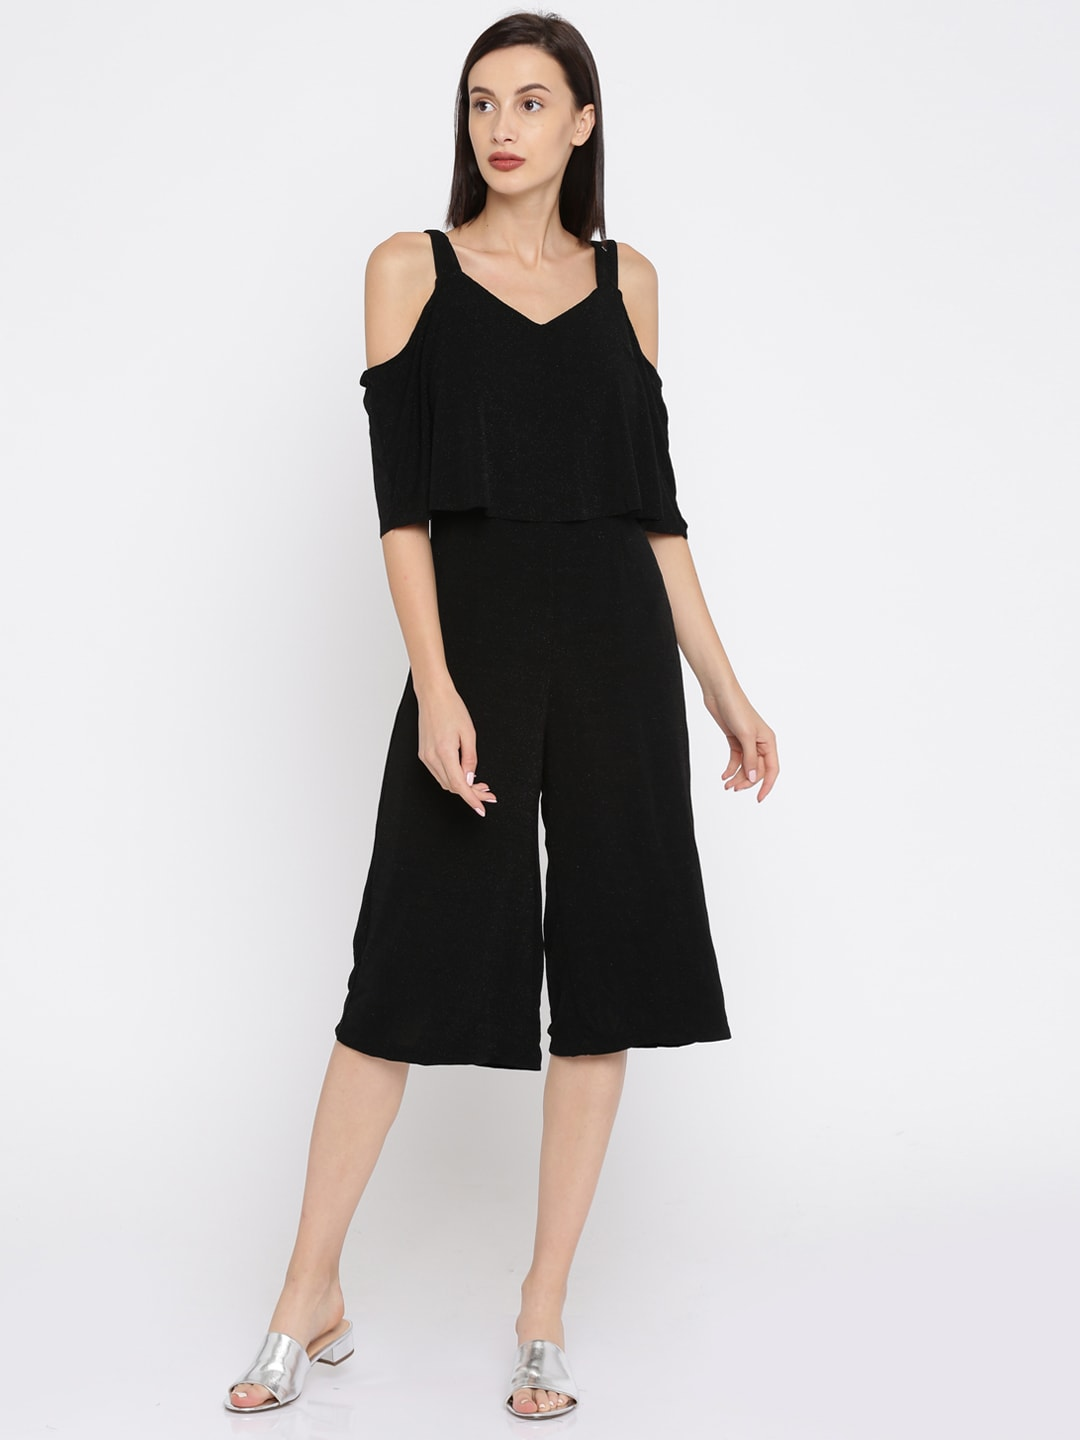 0d40da31d571 Only All Zara Jumpsuit - Buy Only All Zara Jumpsuit online in India